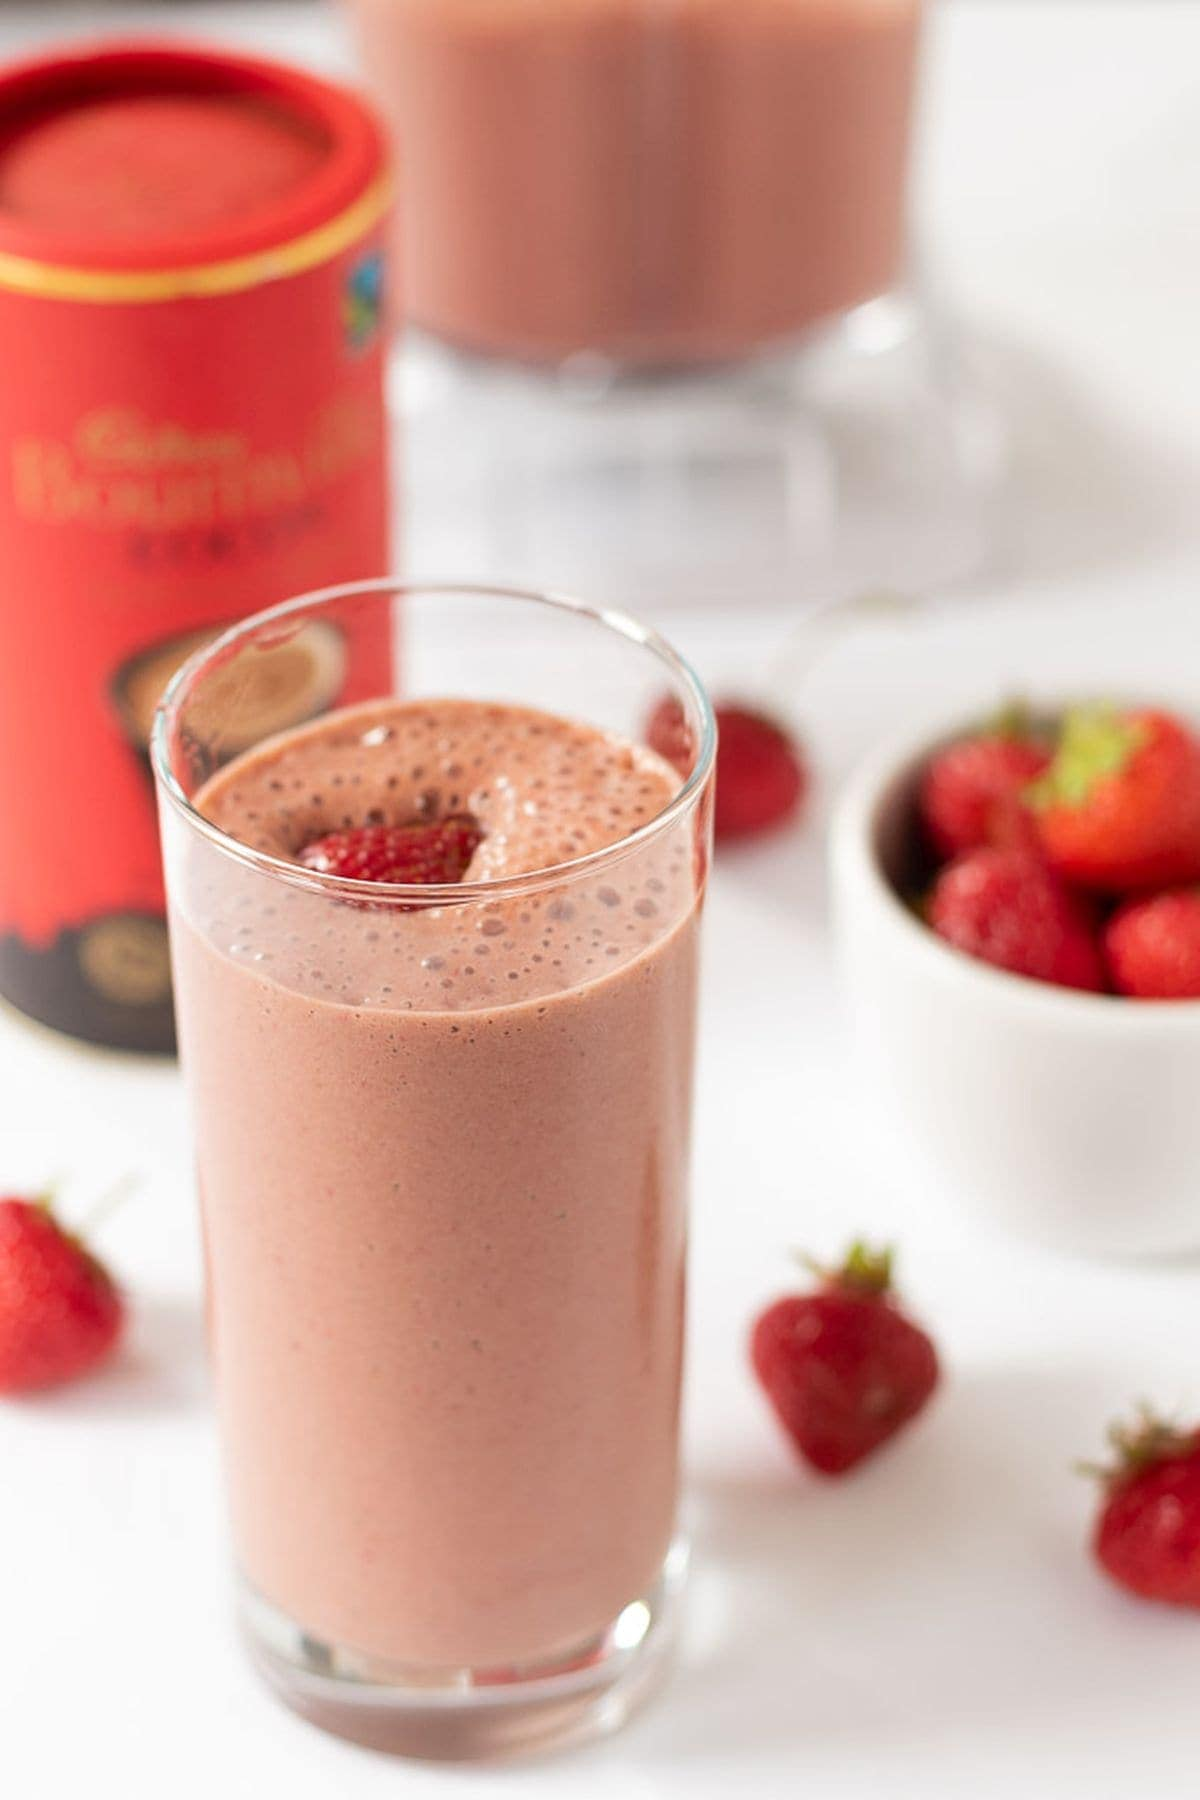 A tall glass of easy chocolate strawberry smoothie. Container of drinking chocolate, a dish of strawberries to the side and the rest of the smoothie in a blender jug in the background.